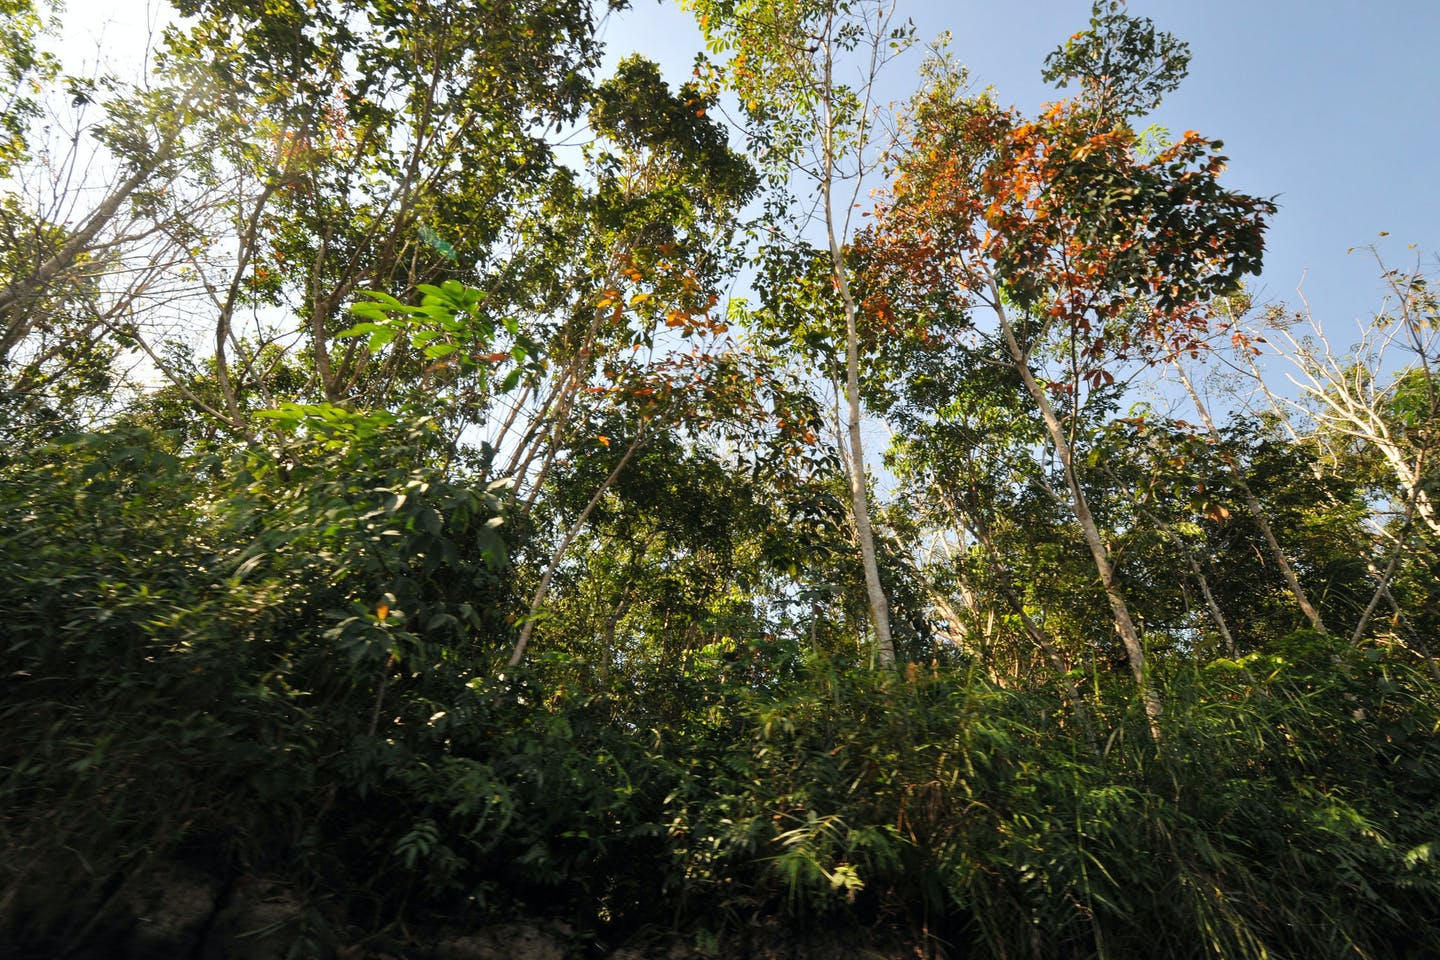 Kalimantan peat swamp forest